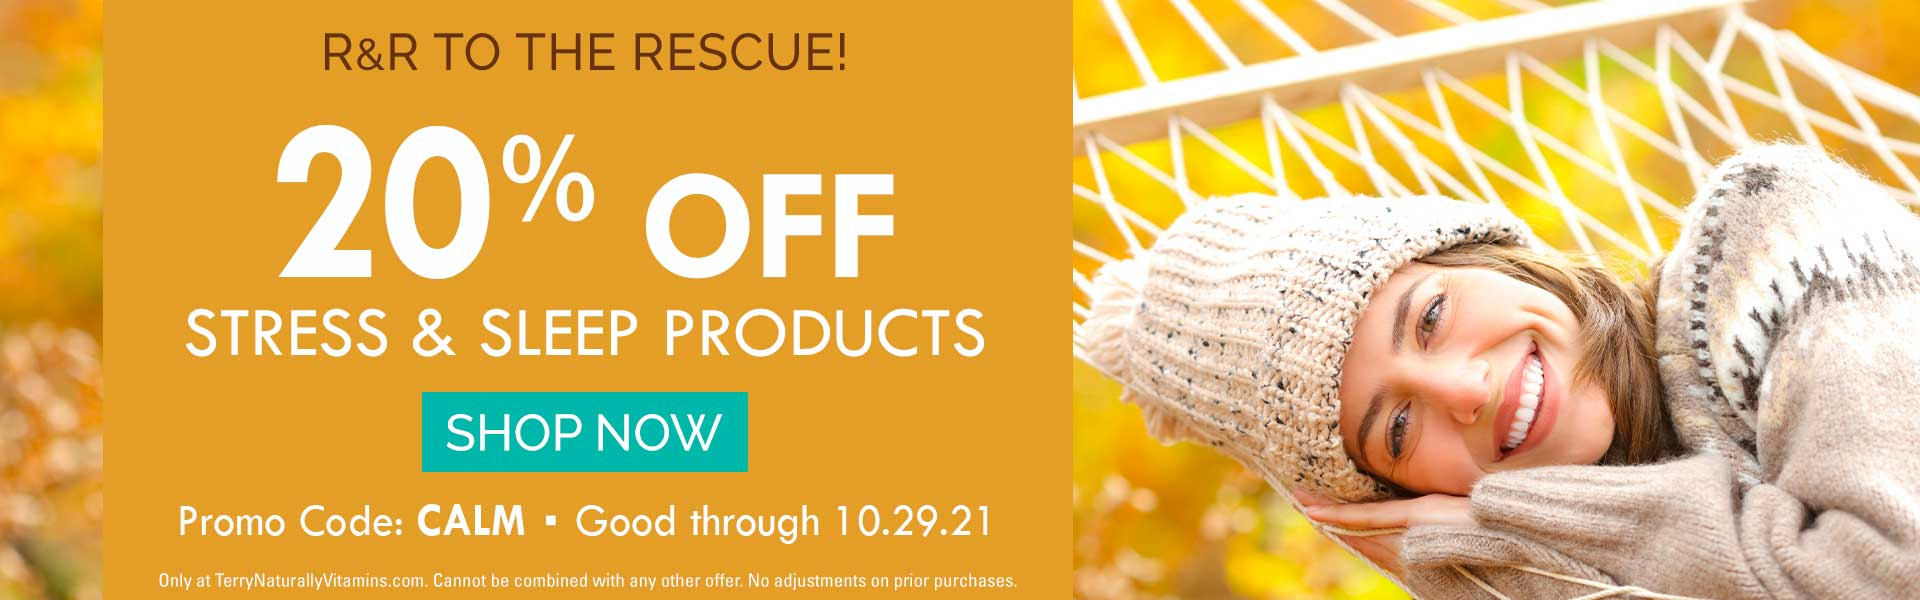 R&R to the Rescue!  •  20% off Stress & Sleep Products